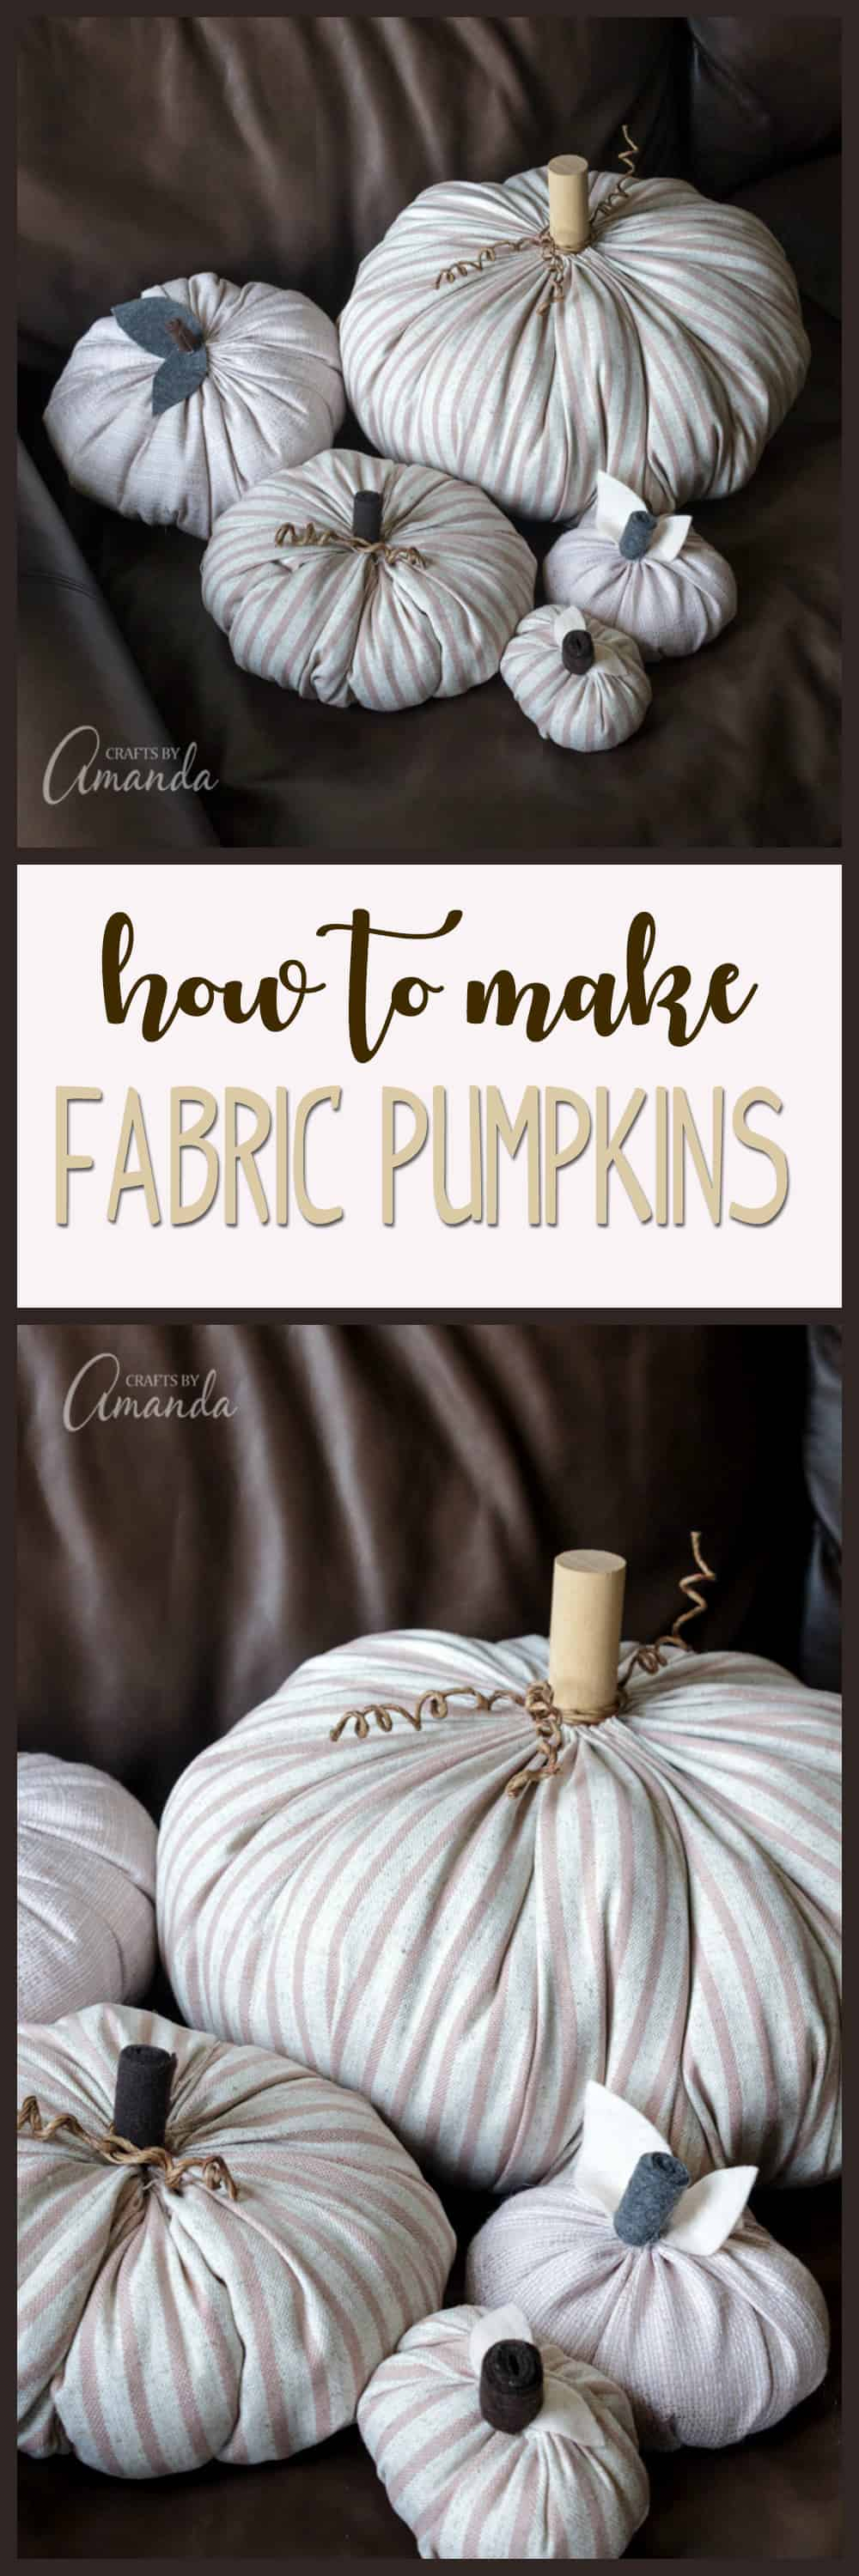 FABRIC PUMPKINS! Learn how to make these chic pumpkins with minimal sewing.